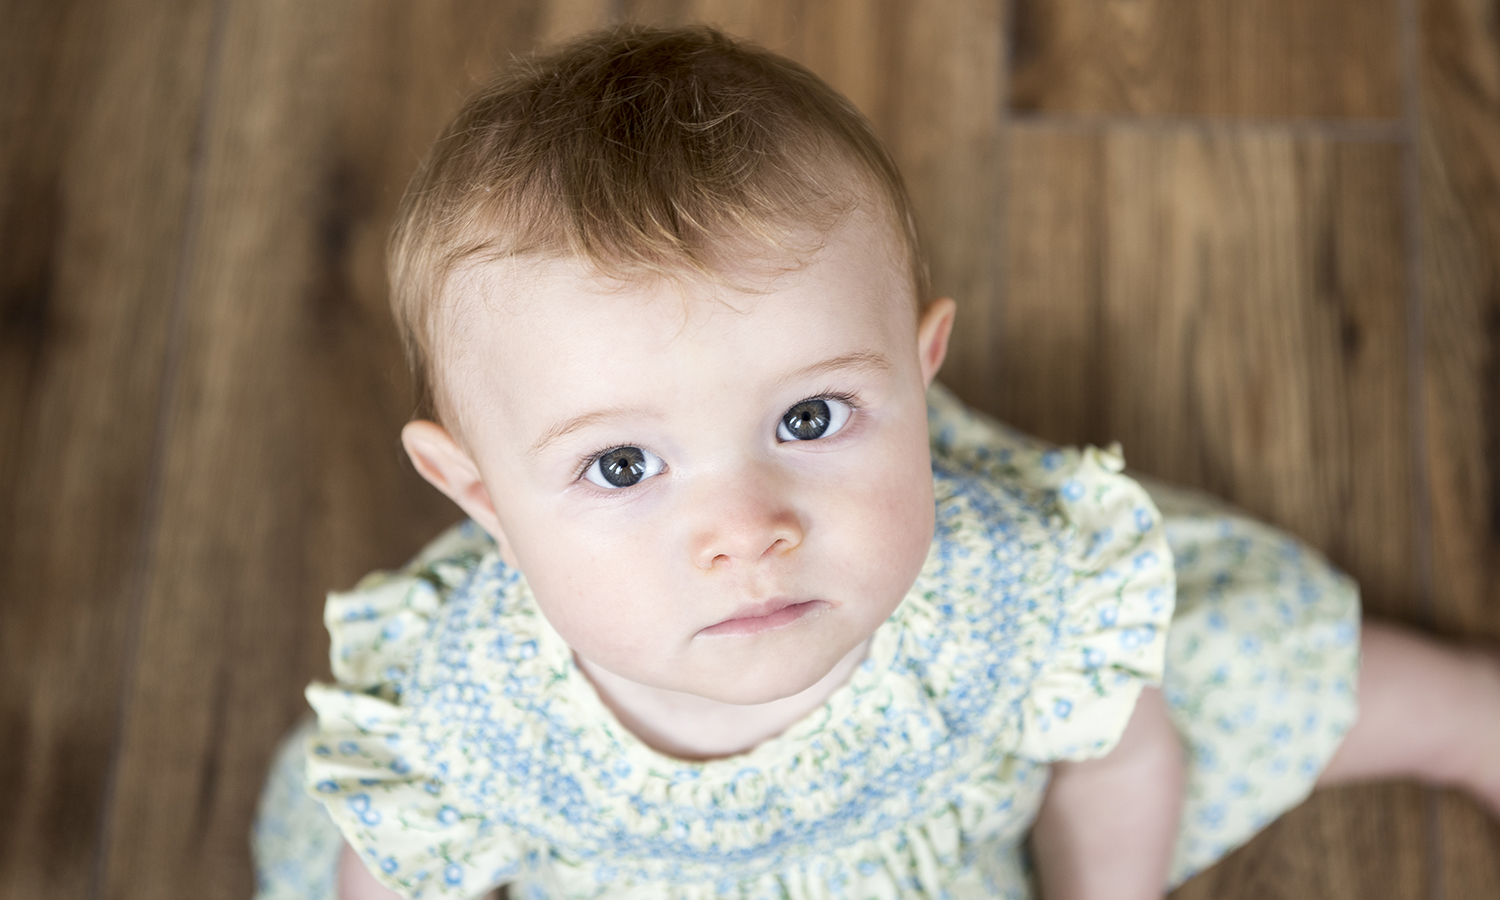 Oh, how time passes – I was invited to photograph Maisie at 6 months old.